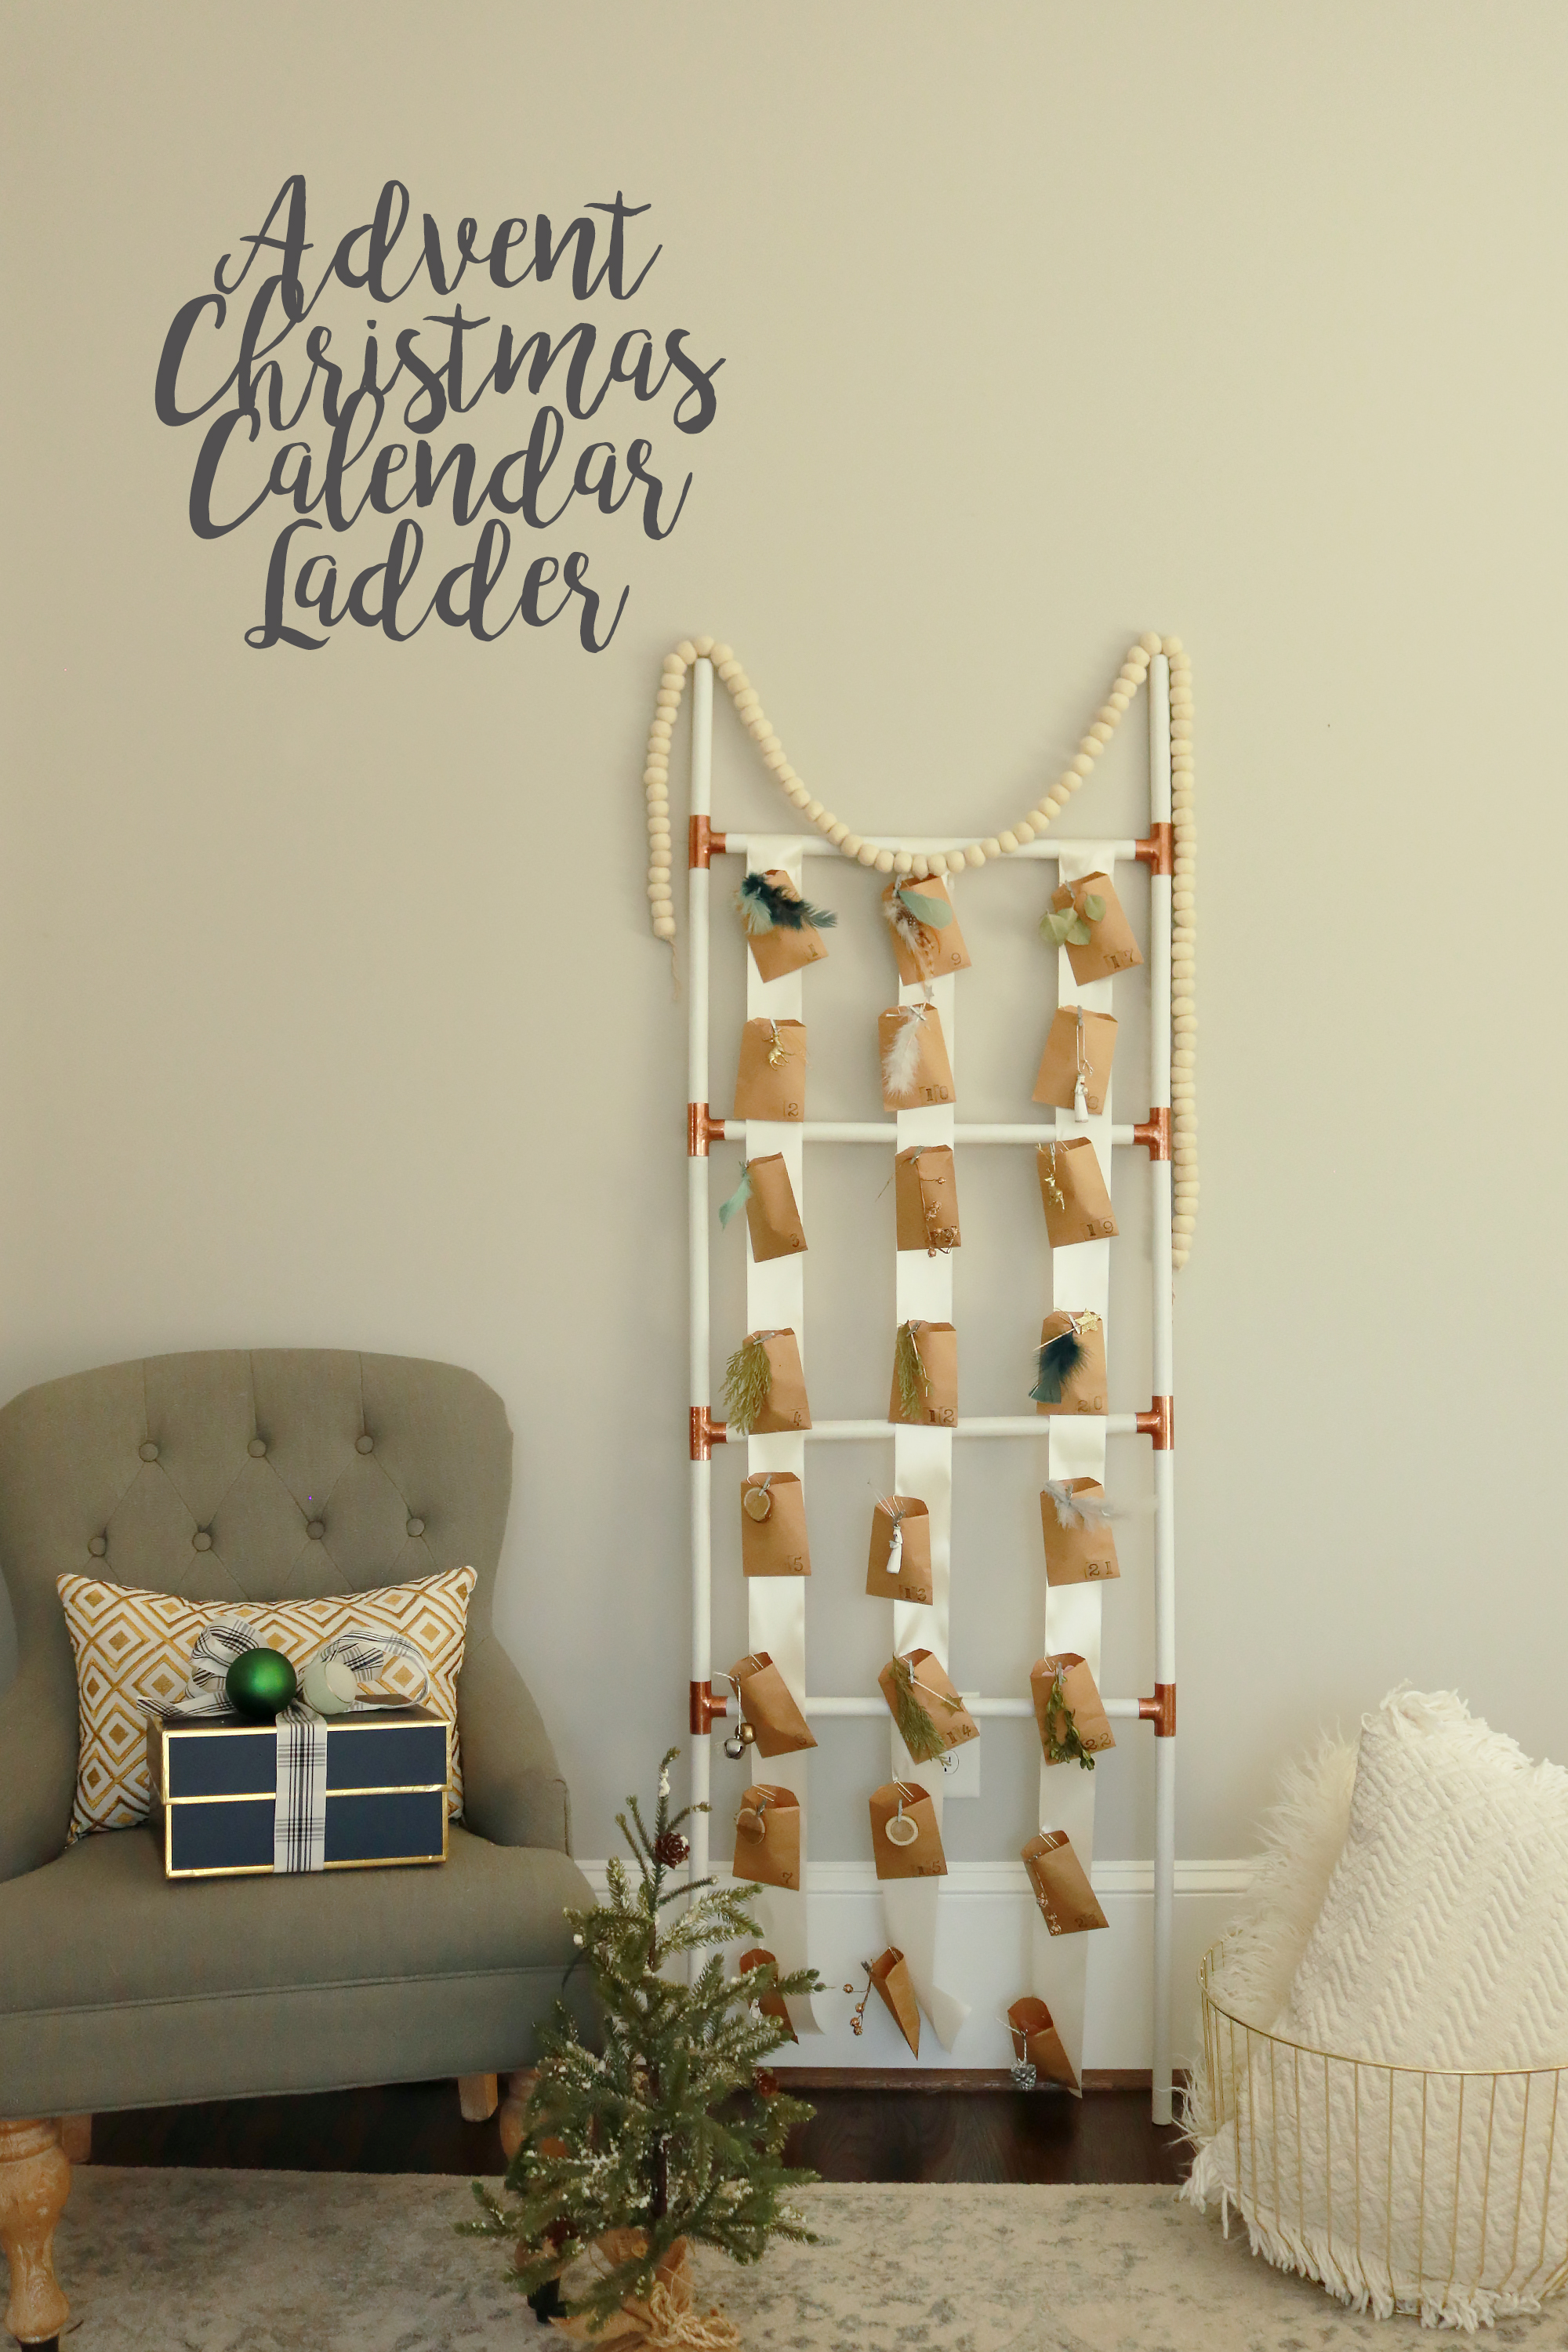 advent Christmas calendar ladder, advent calendar DIY, advent calendar for kids, Christmas calendar, twelve days of Christmas, Christmas things to do, Christmas activities